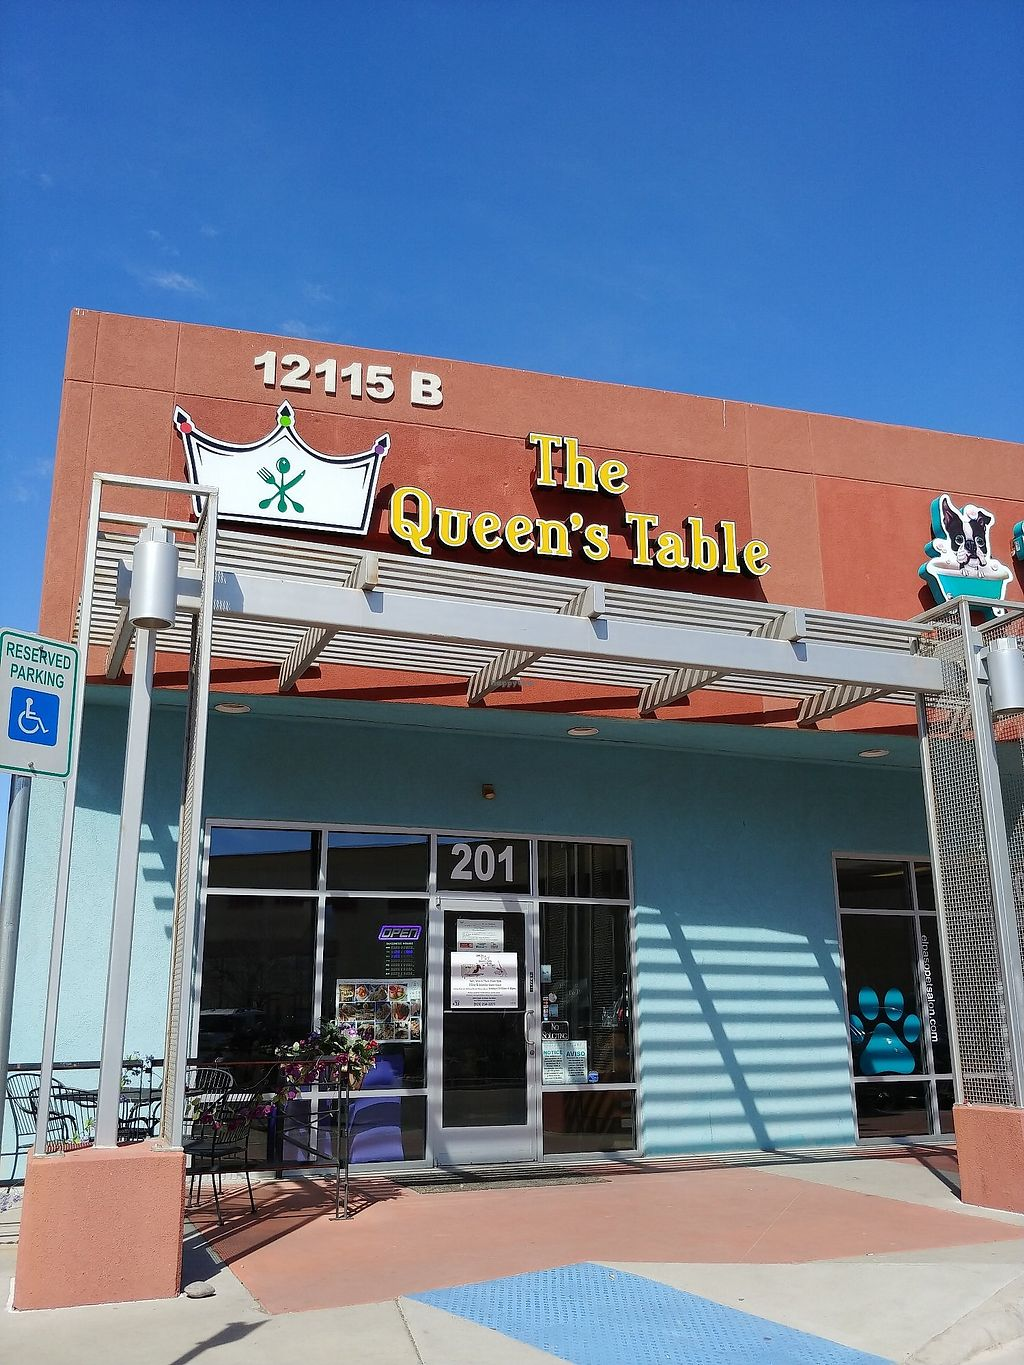 the queen s table vegan cuisine el paso texas restaurant happycow table vegan cuisine el paso texas